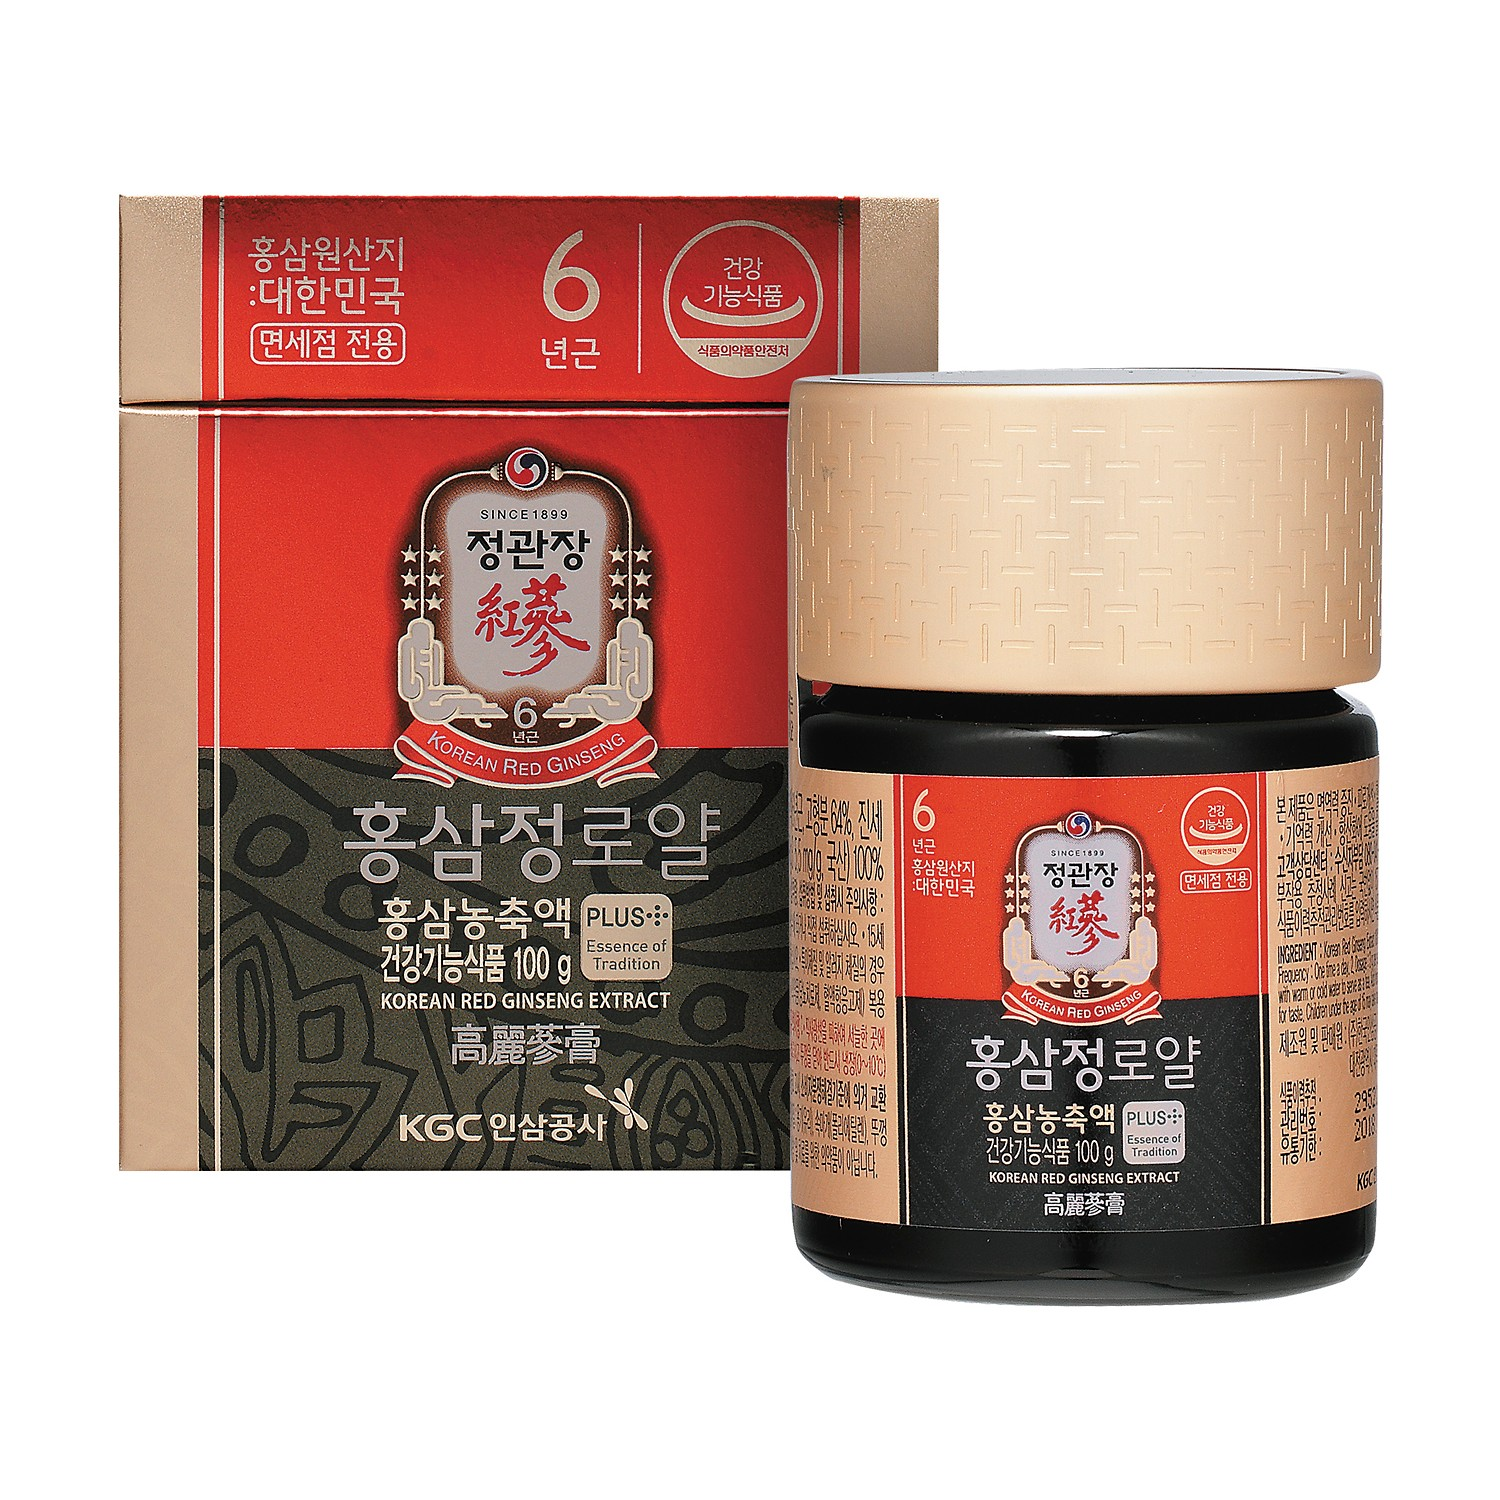 RED GINSENG EXTRACT ROYAL PLUS 100g